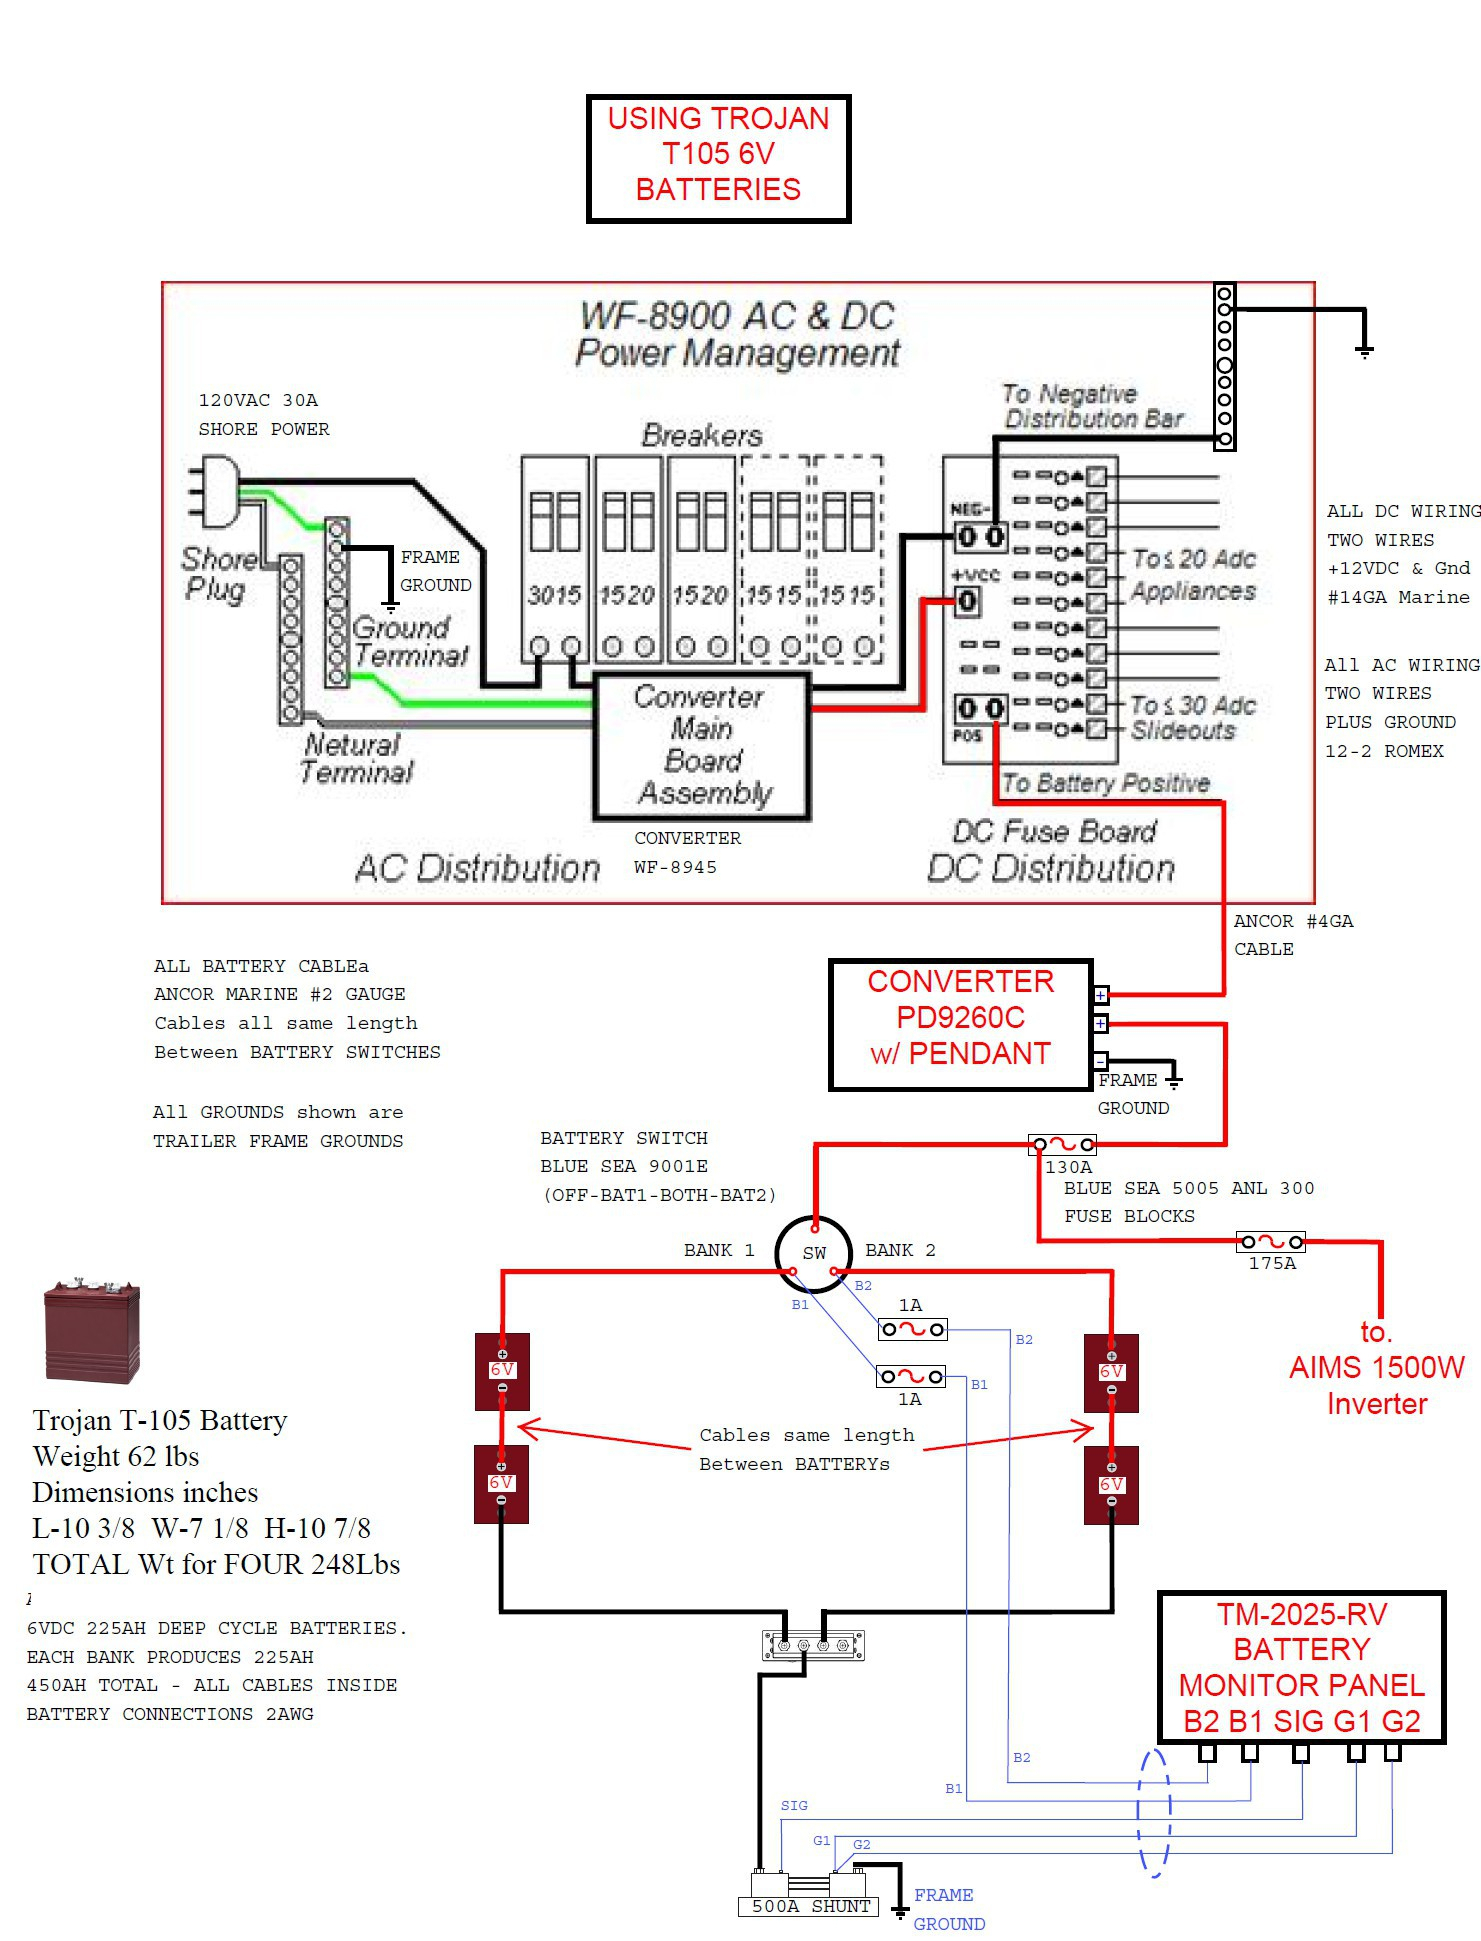 Rv Monitor Panel Wiring Diagram Great Design Of Power Schematic Distribution Sample Rh Worldvisionsummerfest Com Water Pump For Heater Switch And Levels